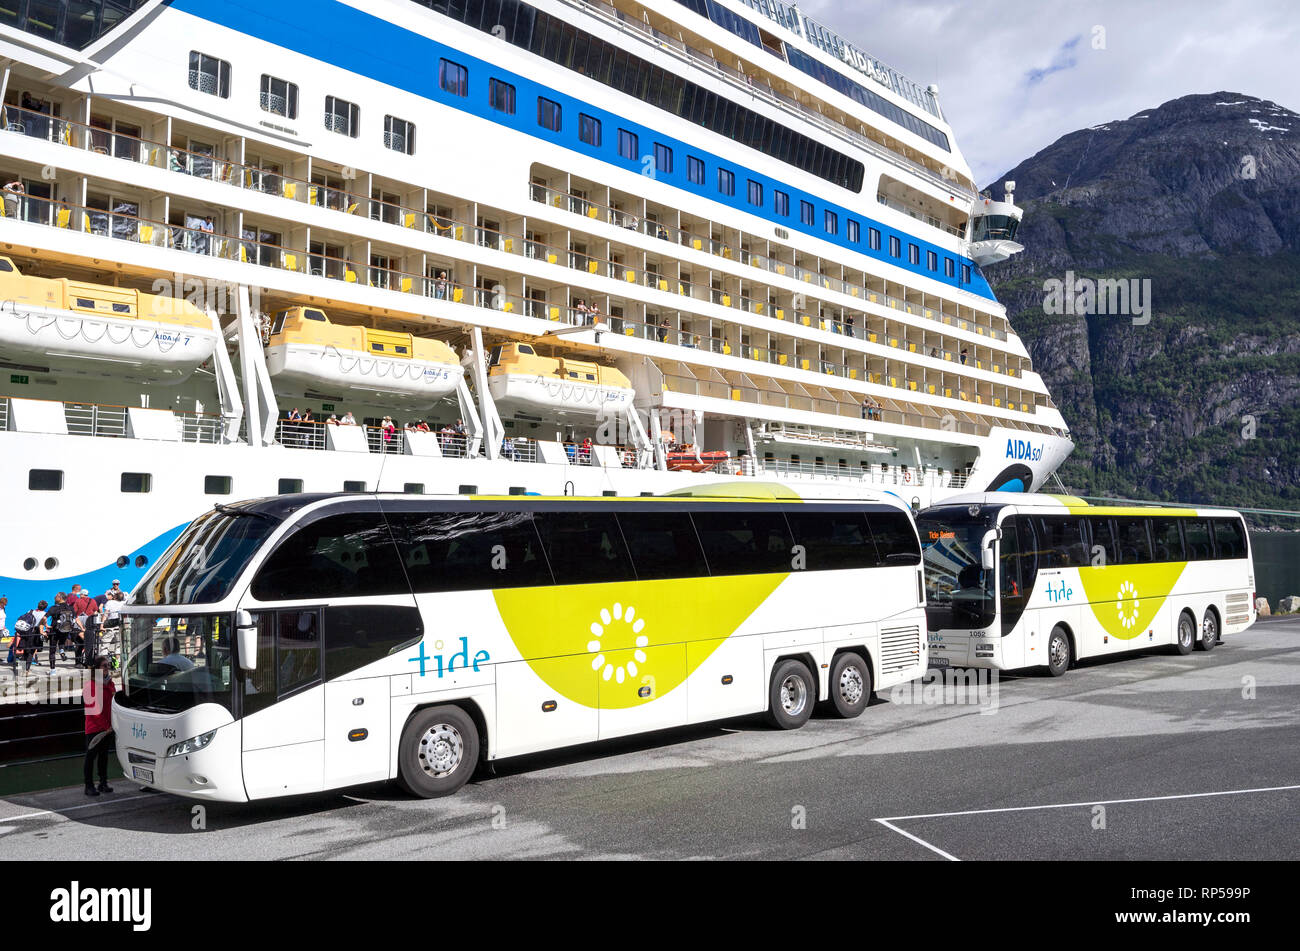 coaches of tide ASA waiting at AIDAsol for shore excursion passengers. Tide is one of the largest coach companies in Norway. - Stock Image